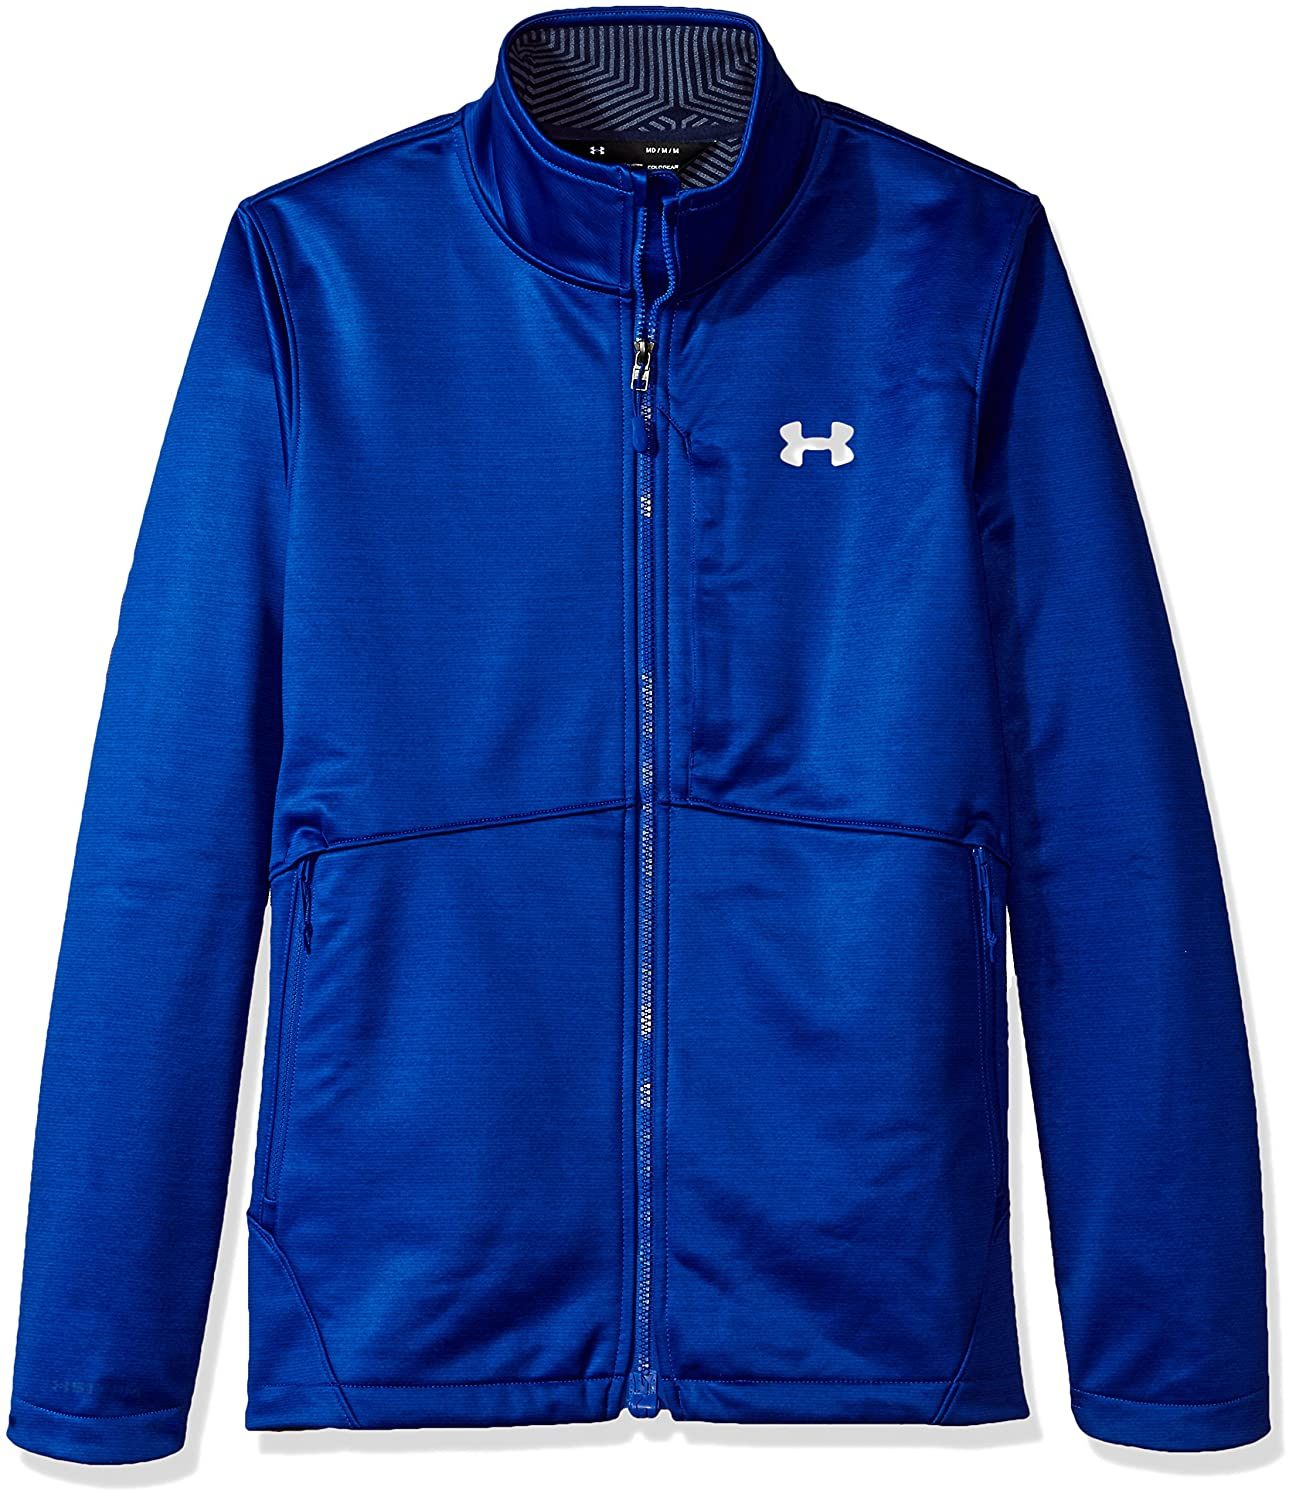 Under Armour Men's Storm Softershell Jacket Under Armour Outdoors